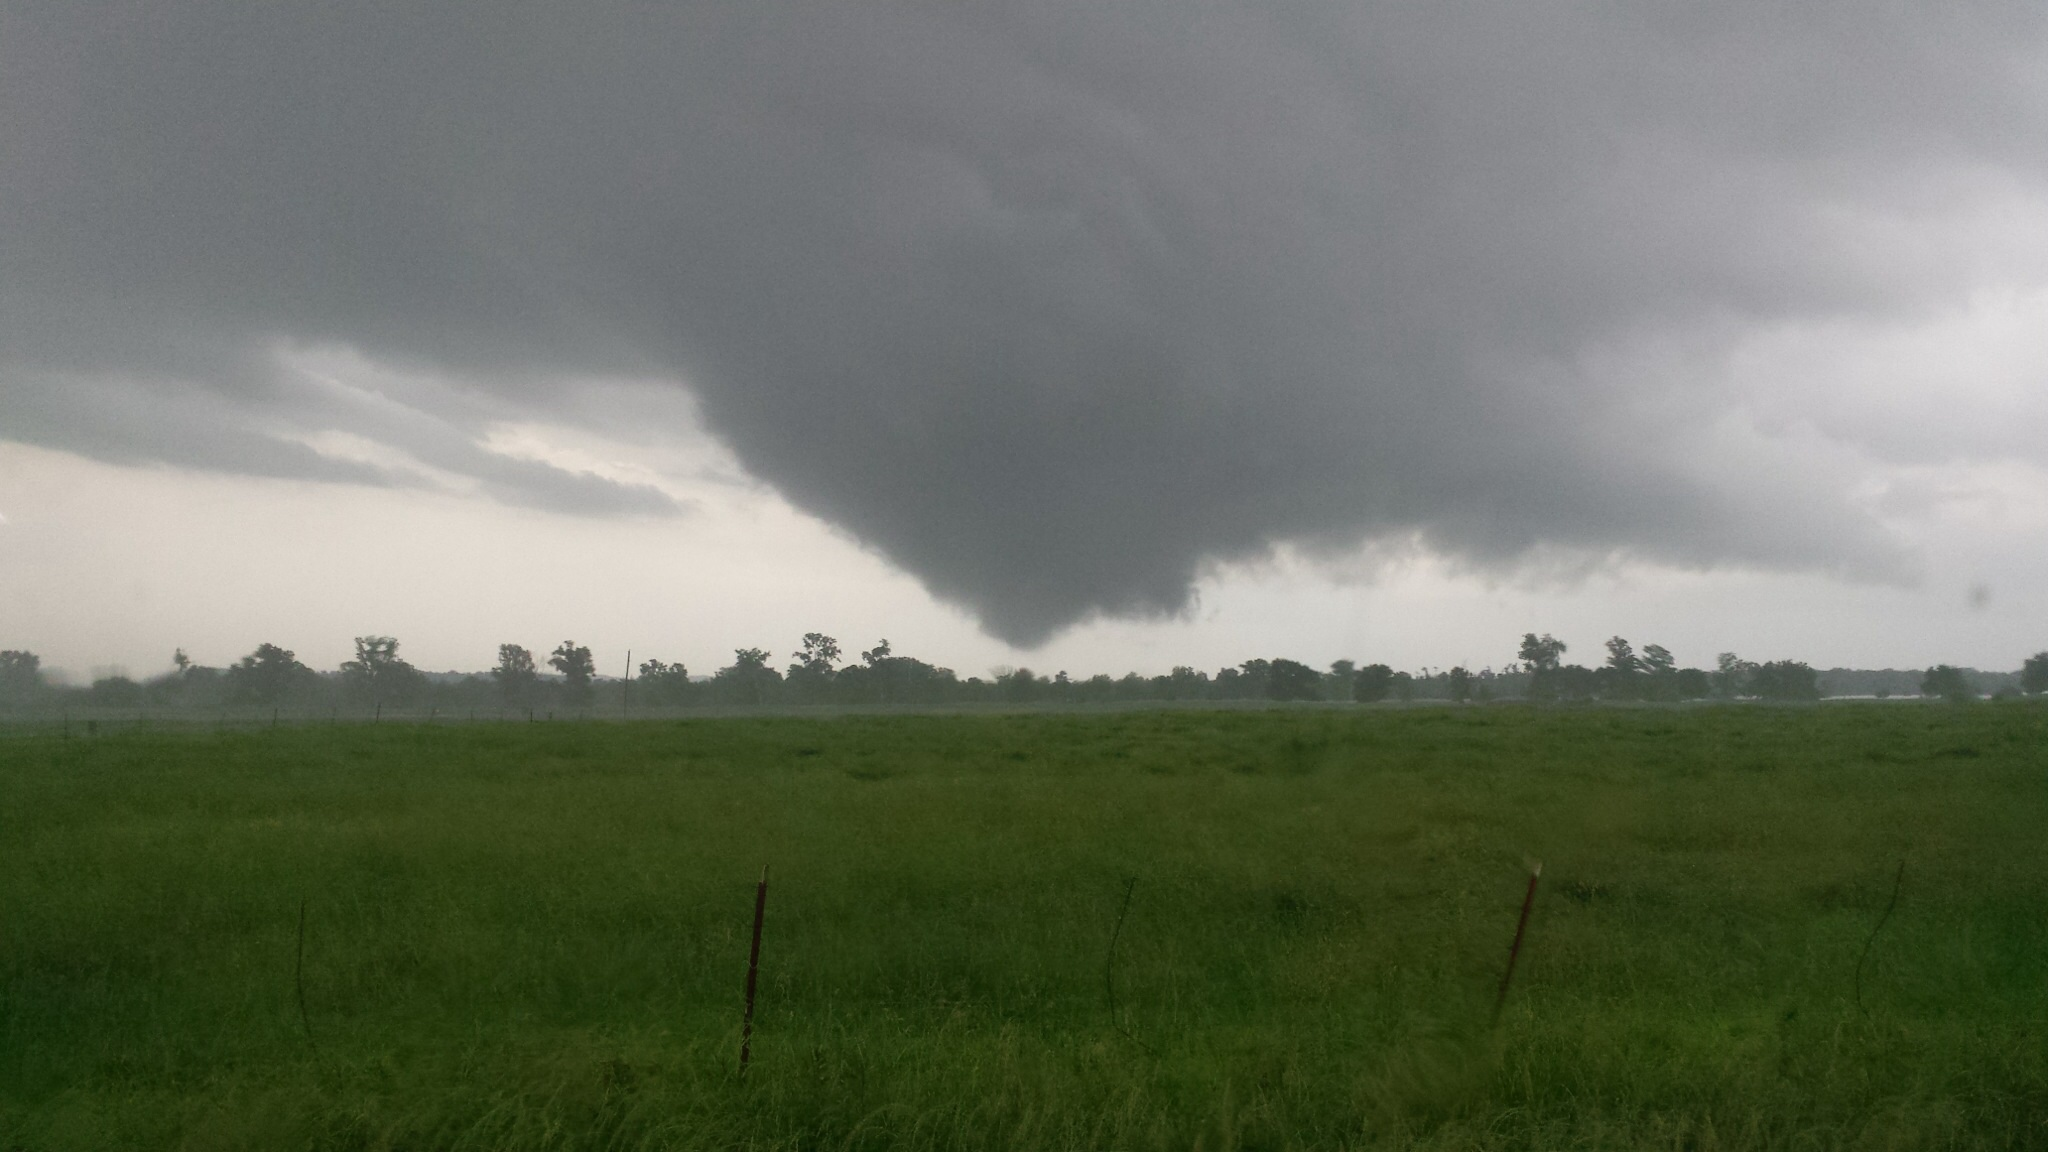 In between Paris and Ozark from 5NEWS viewer Stephen Gossow